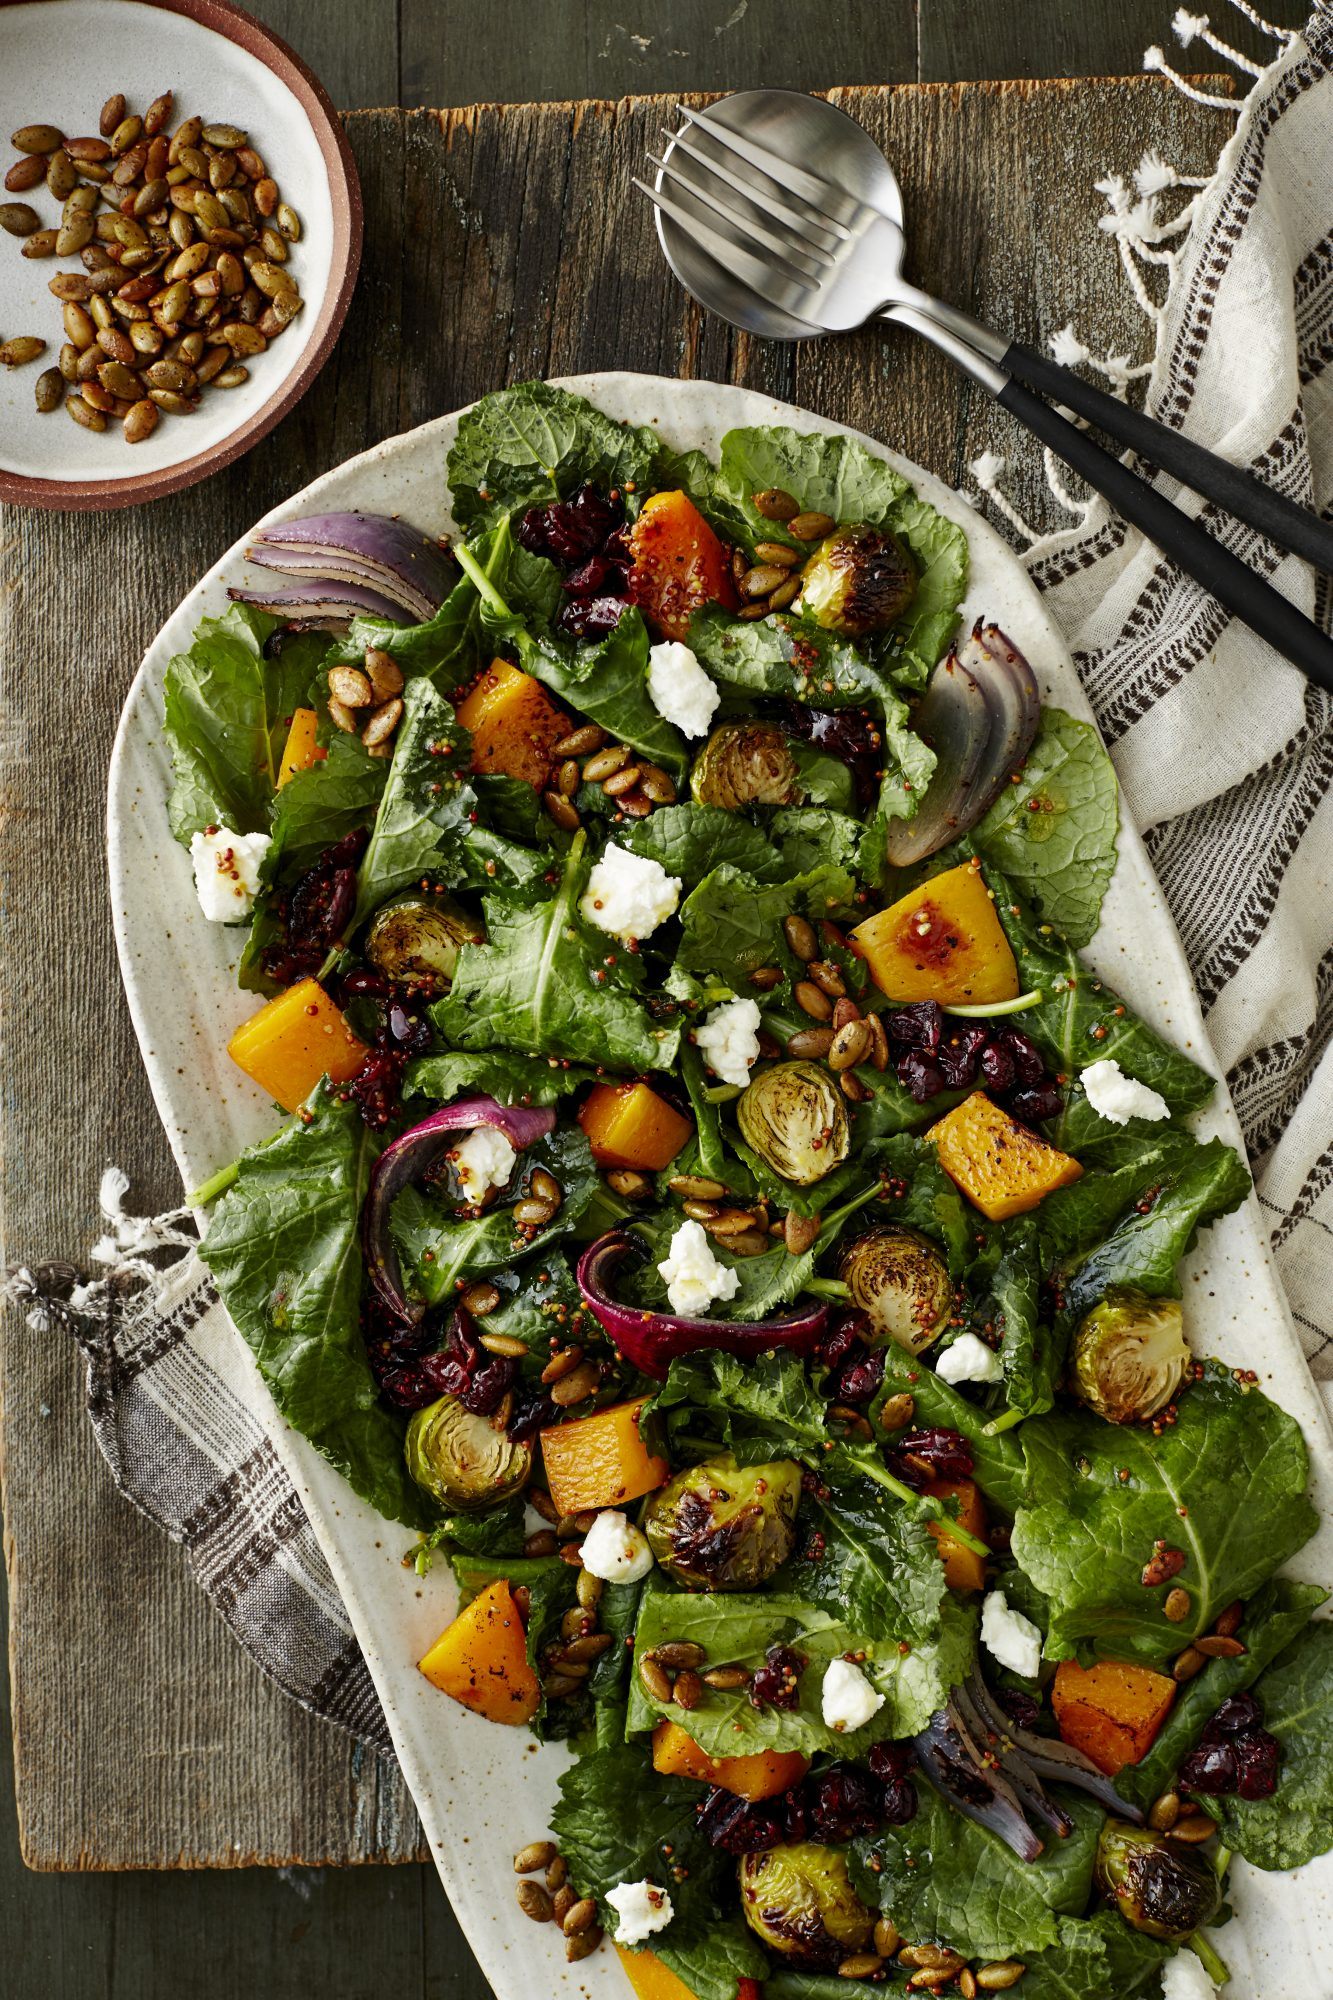 Festive Thanksgiving Salad Recipes